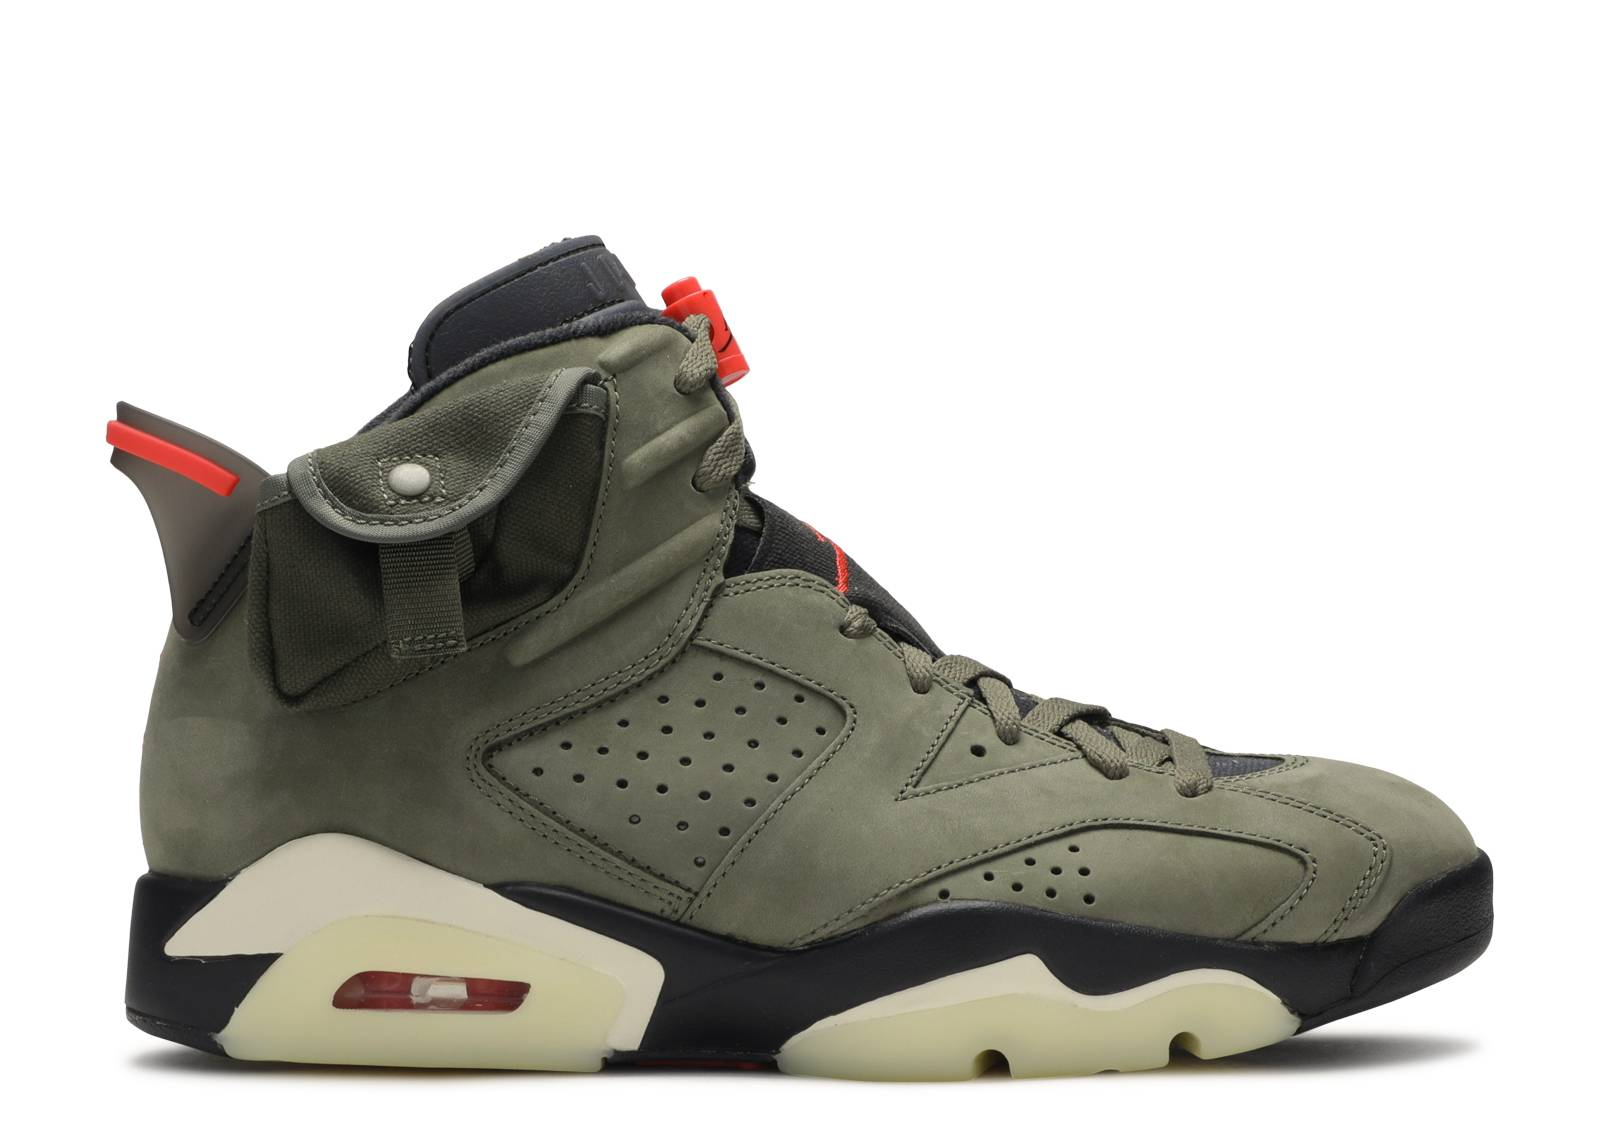 actualizar Locura binario  Travis Scott X Air Jordan 6 Retro 'Olive' - Air Jordan - CN1084 200 -  medium olive/black-sail-university red | Flight Club